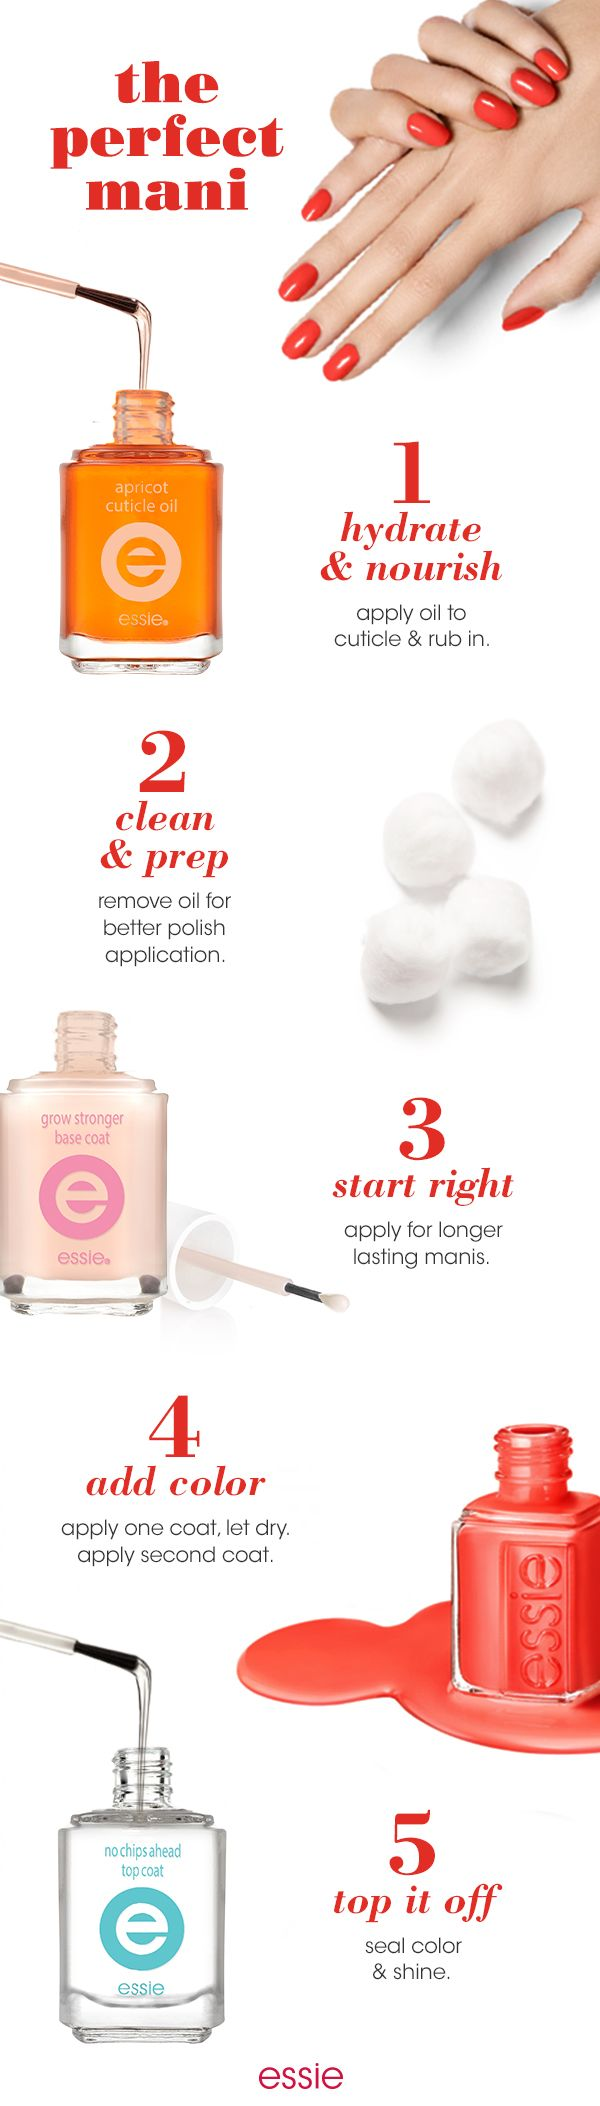 The perfect mani is only five steps away with these nail essentials. First nourish cuticles with 'apricot cuticle oil'. Clean and prep nails with cotton balls. Apply one coat of 'grow stronger' base coat and let dry. Apply two coats of your favorite essie shade. Pro Tip: Be sure to let the first coat dry before you re-apply.  Then top it off with 'no chips ahead' top coat and off you go.